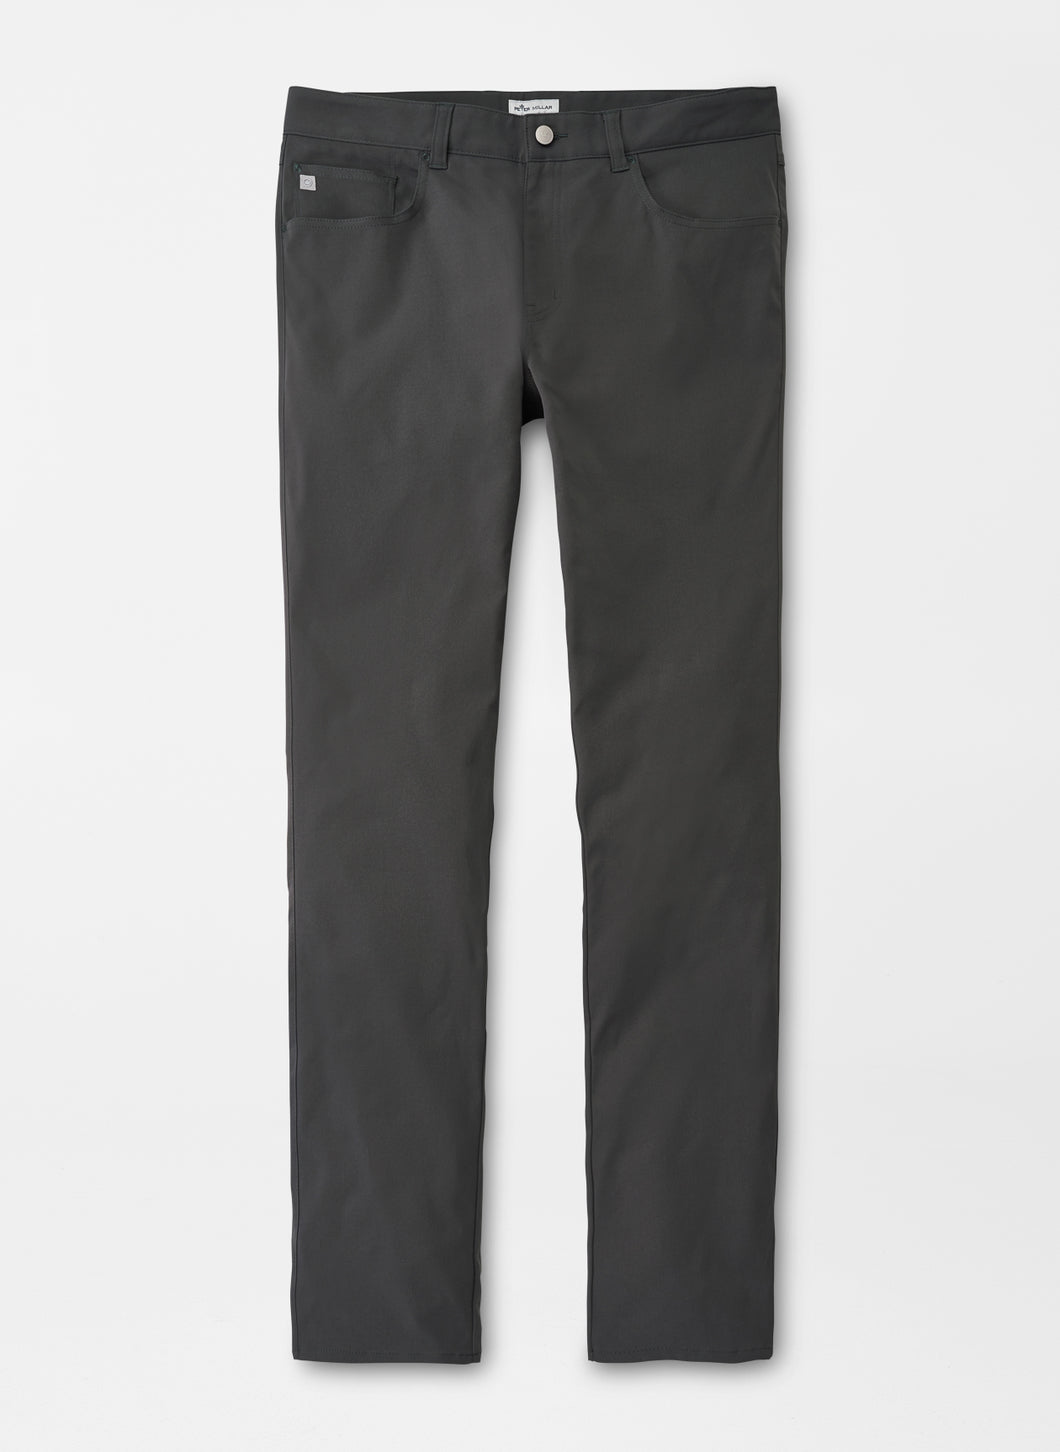 Peter Millar eb66 Performance Five-Pocket Pant in Iron